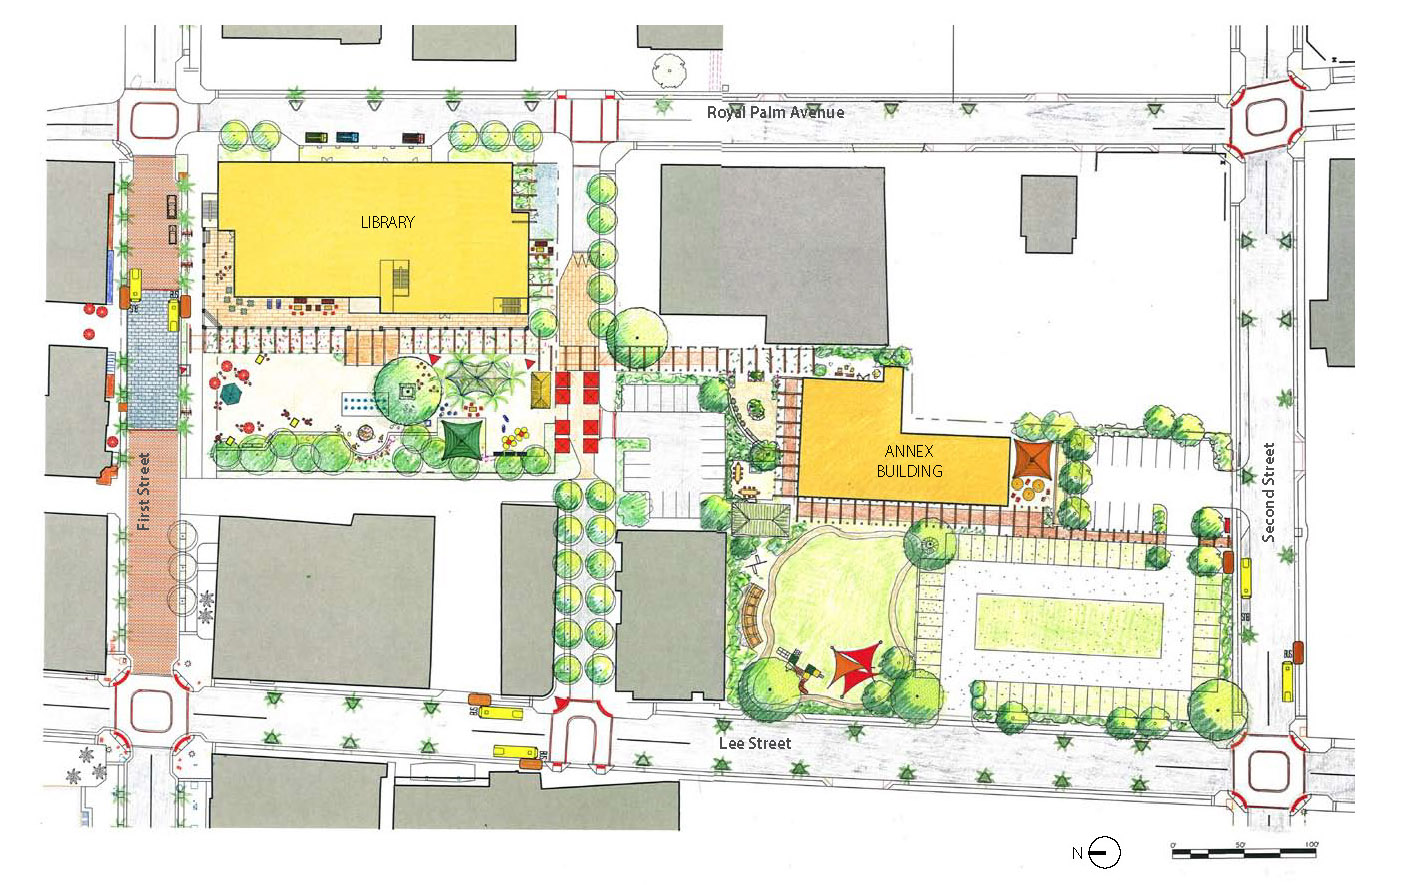 Fort Myers Lee County Library Public Space Master Plan